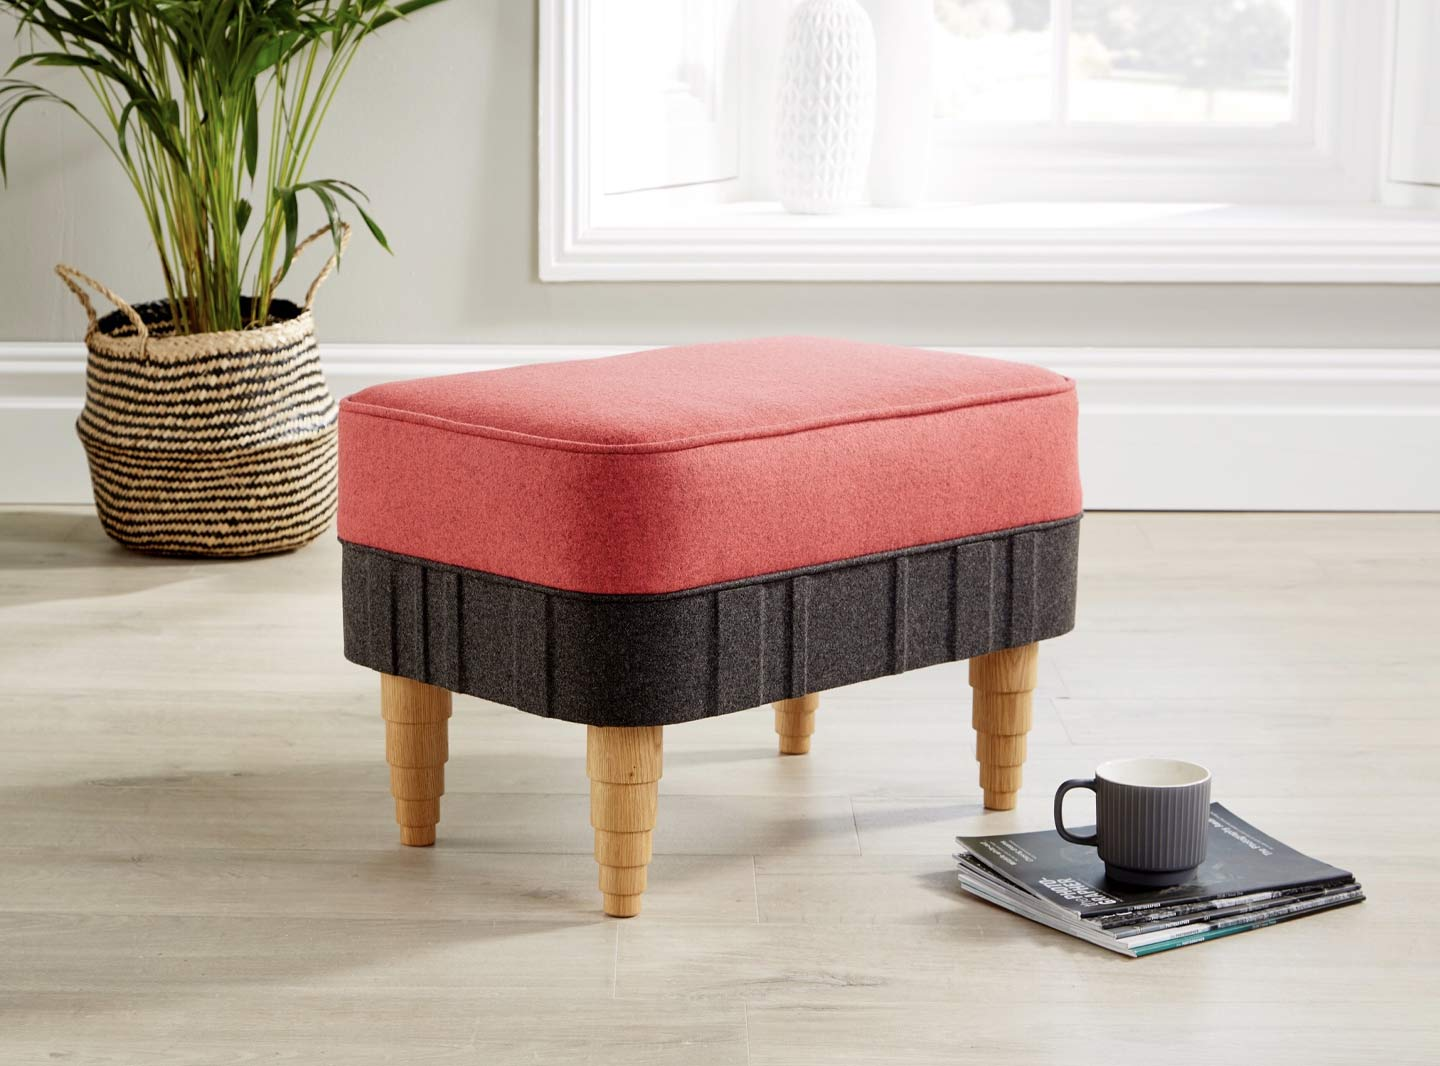 Manchester furniture - Footstool